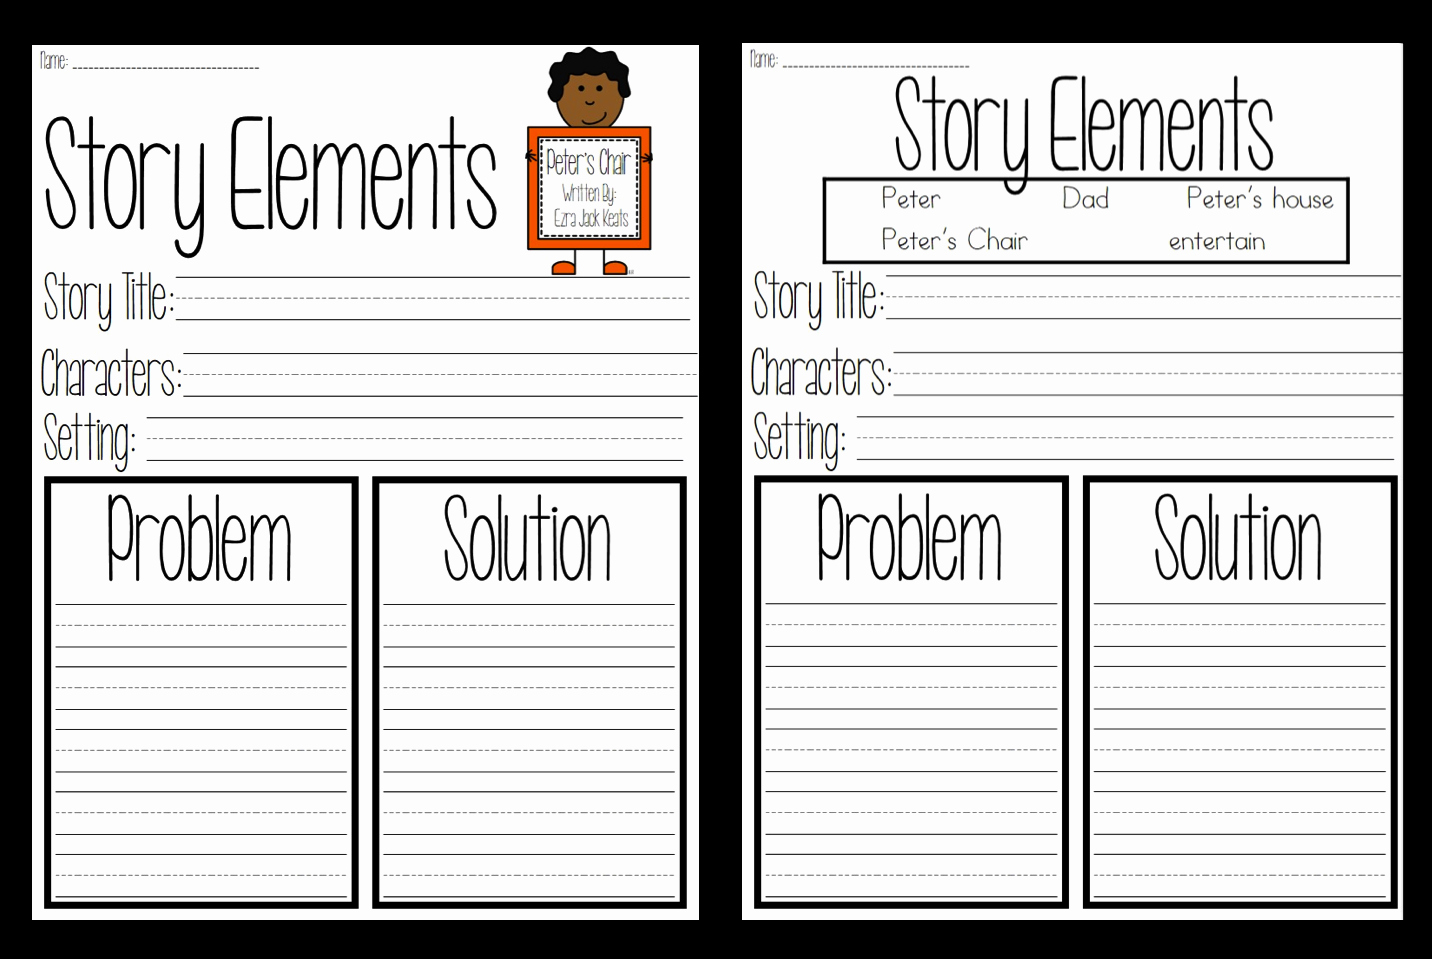 Elements Of A Story Worksheet Luxury Worksheet Story Elements Worksheet Worksheet Fun